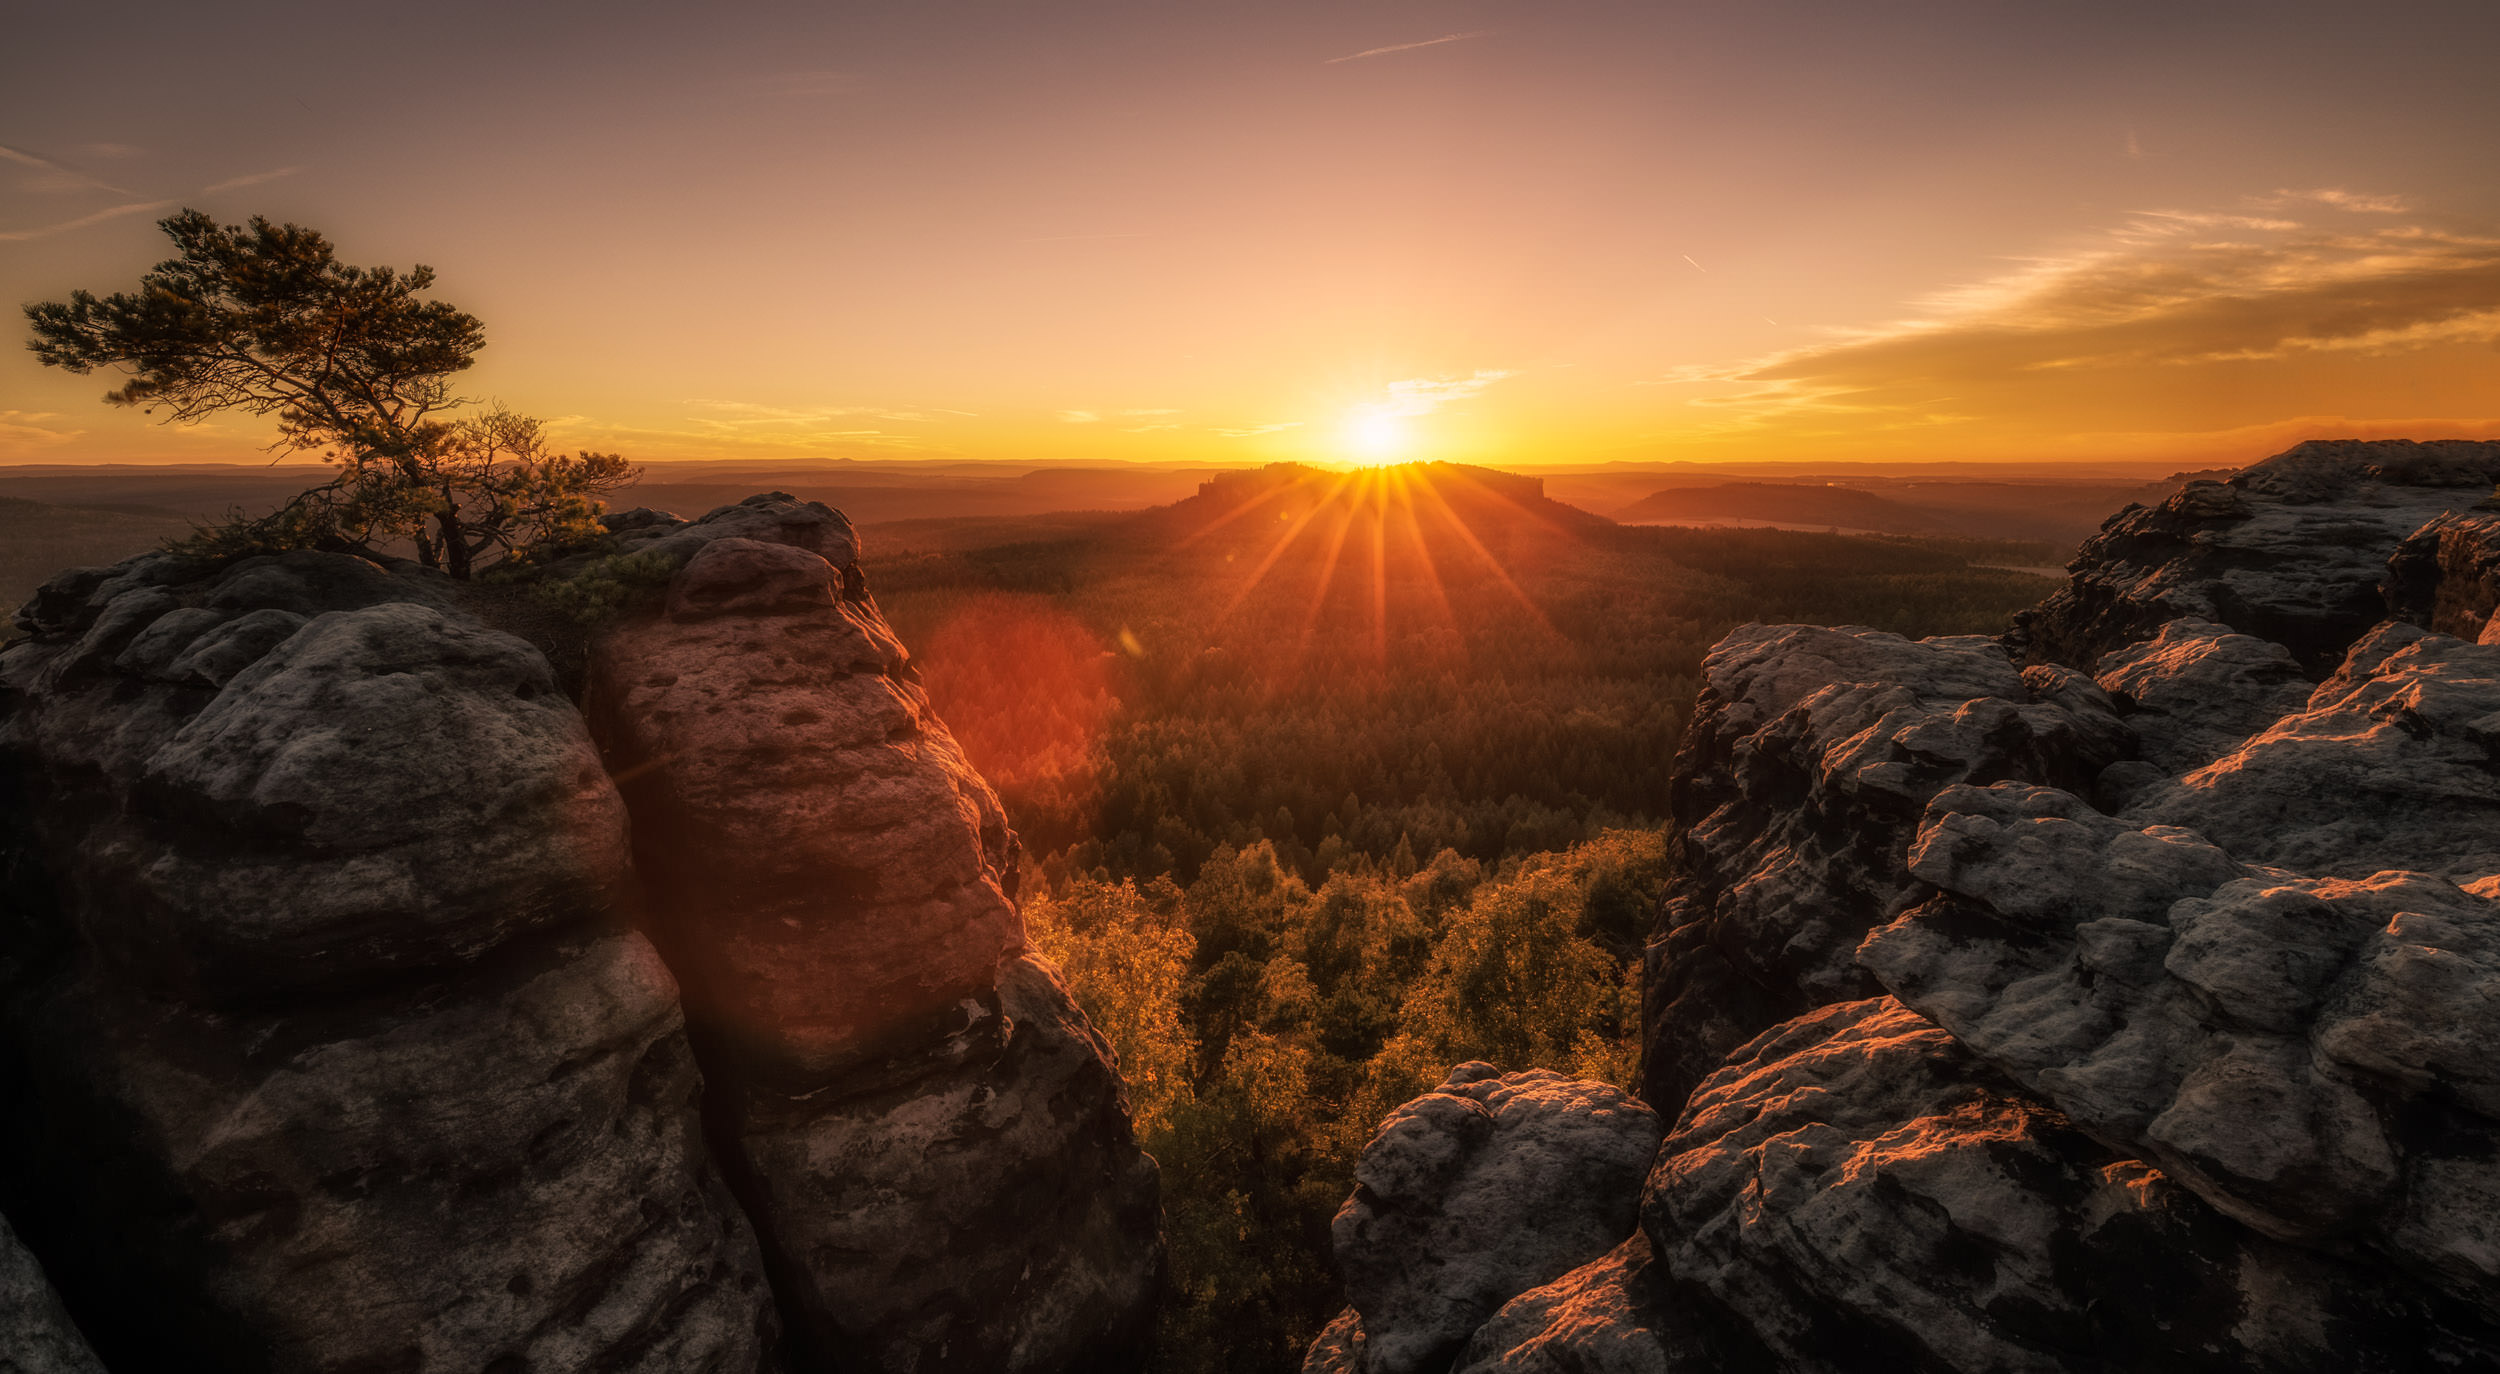 Sunset Gohrischstein - Saxon Switzerland National Park, Germany - Landscape Photography